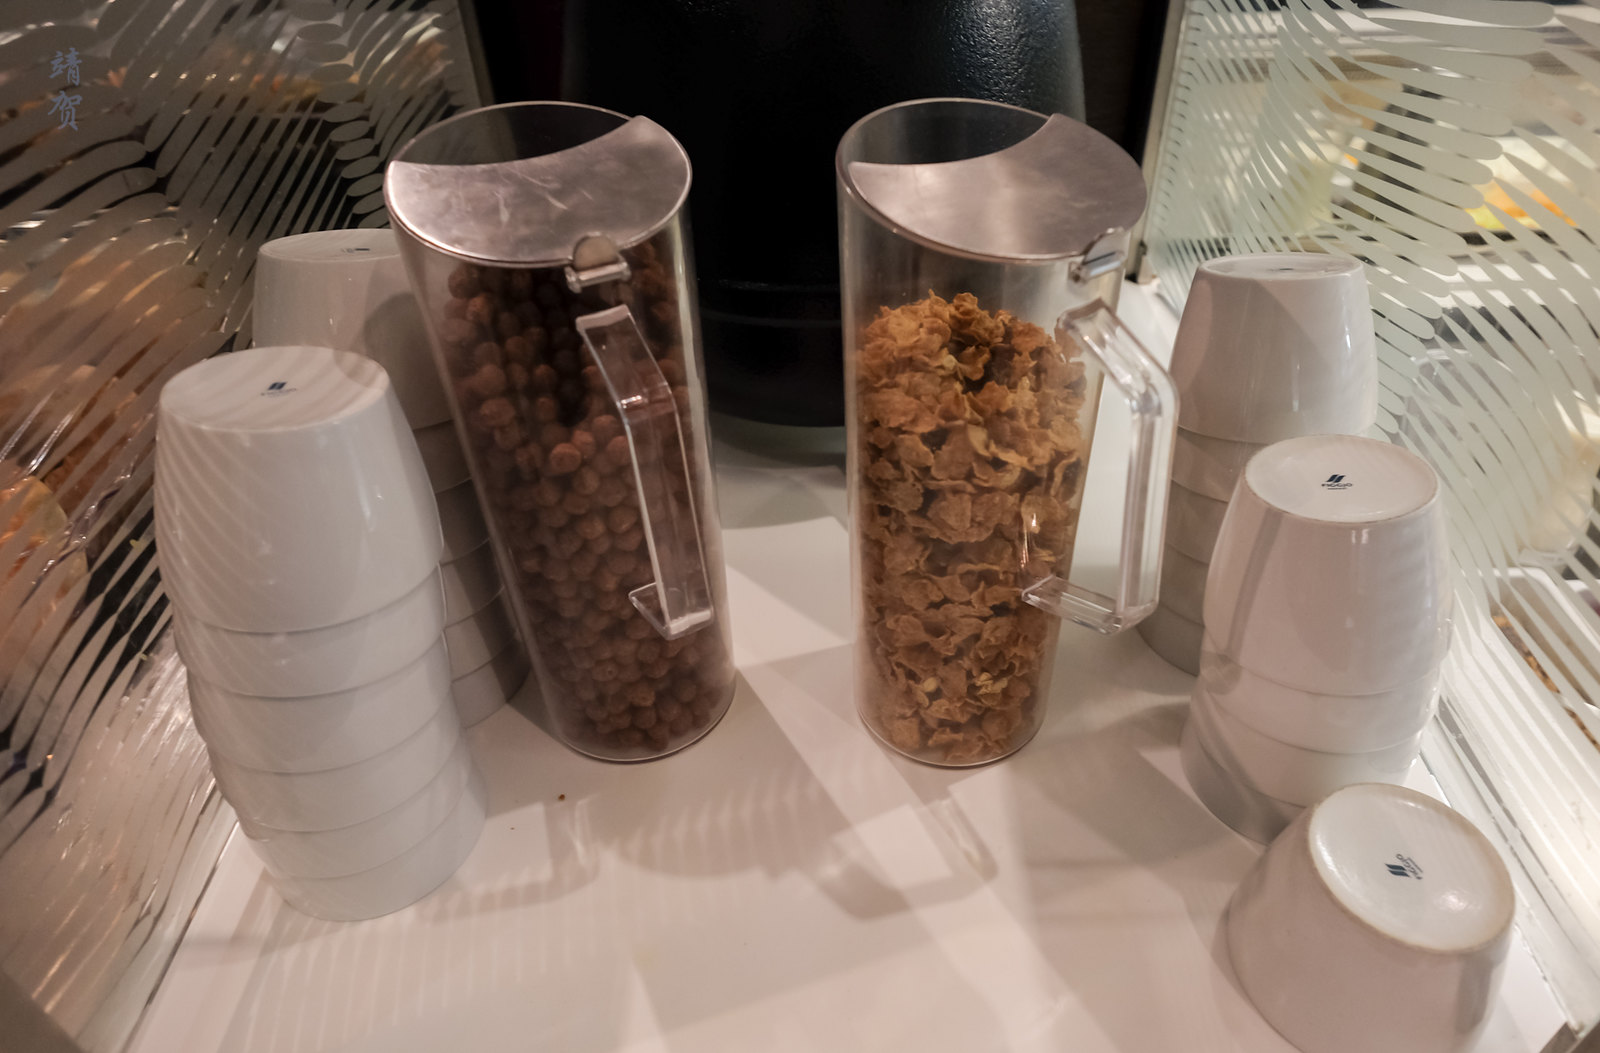 Cereals in jugs